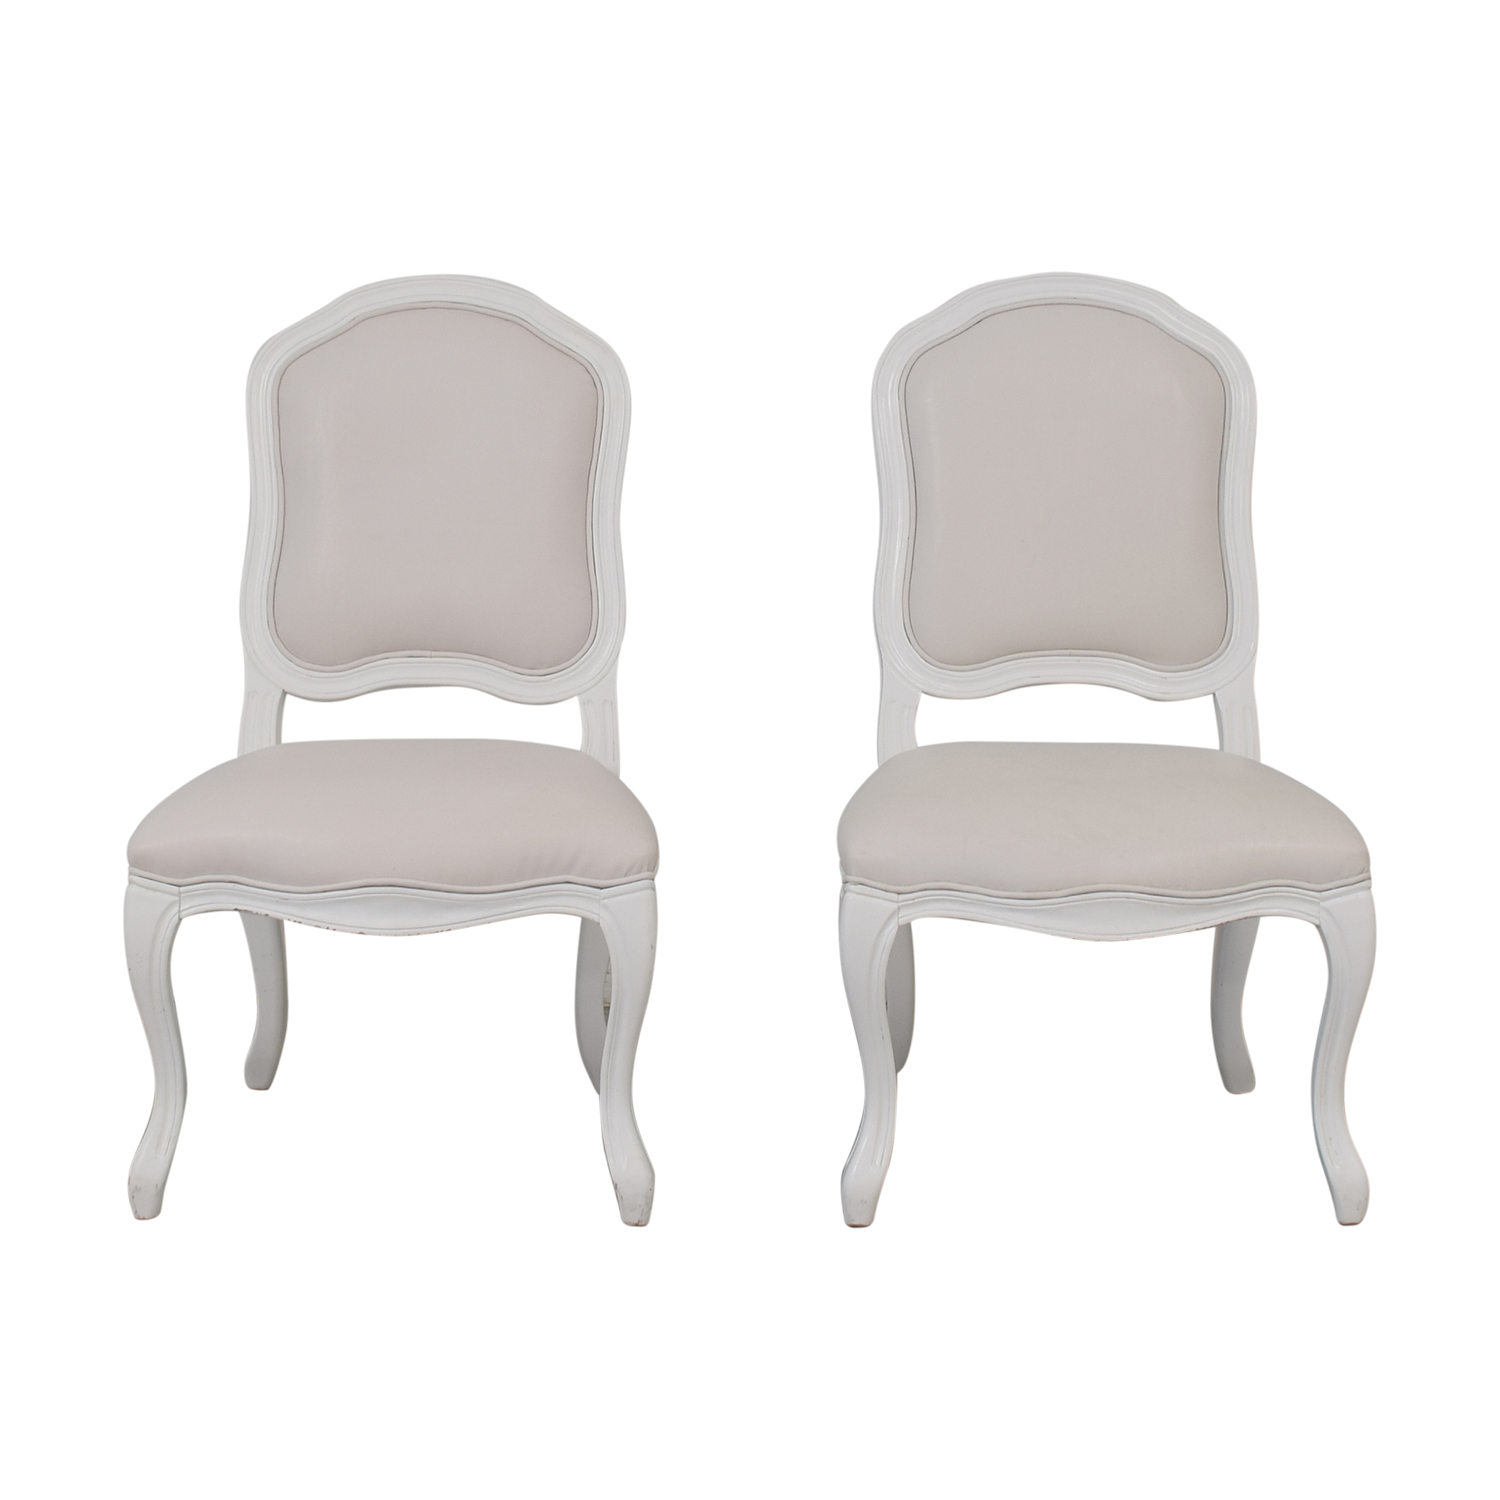 CB2 CB2 Stick Around Side Chairs Dining Chairs